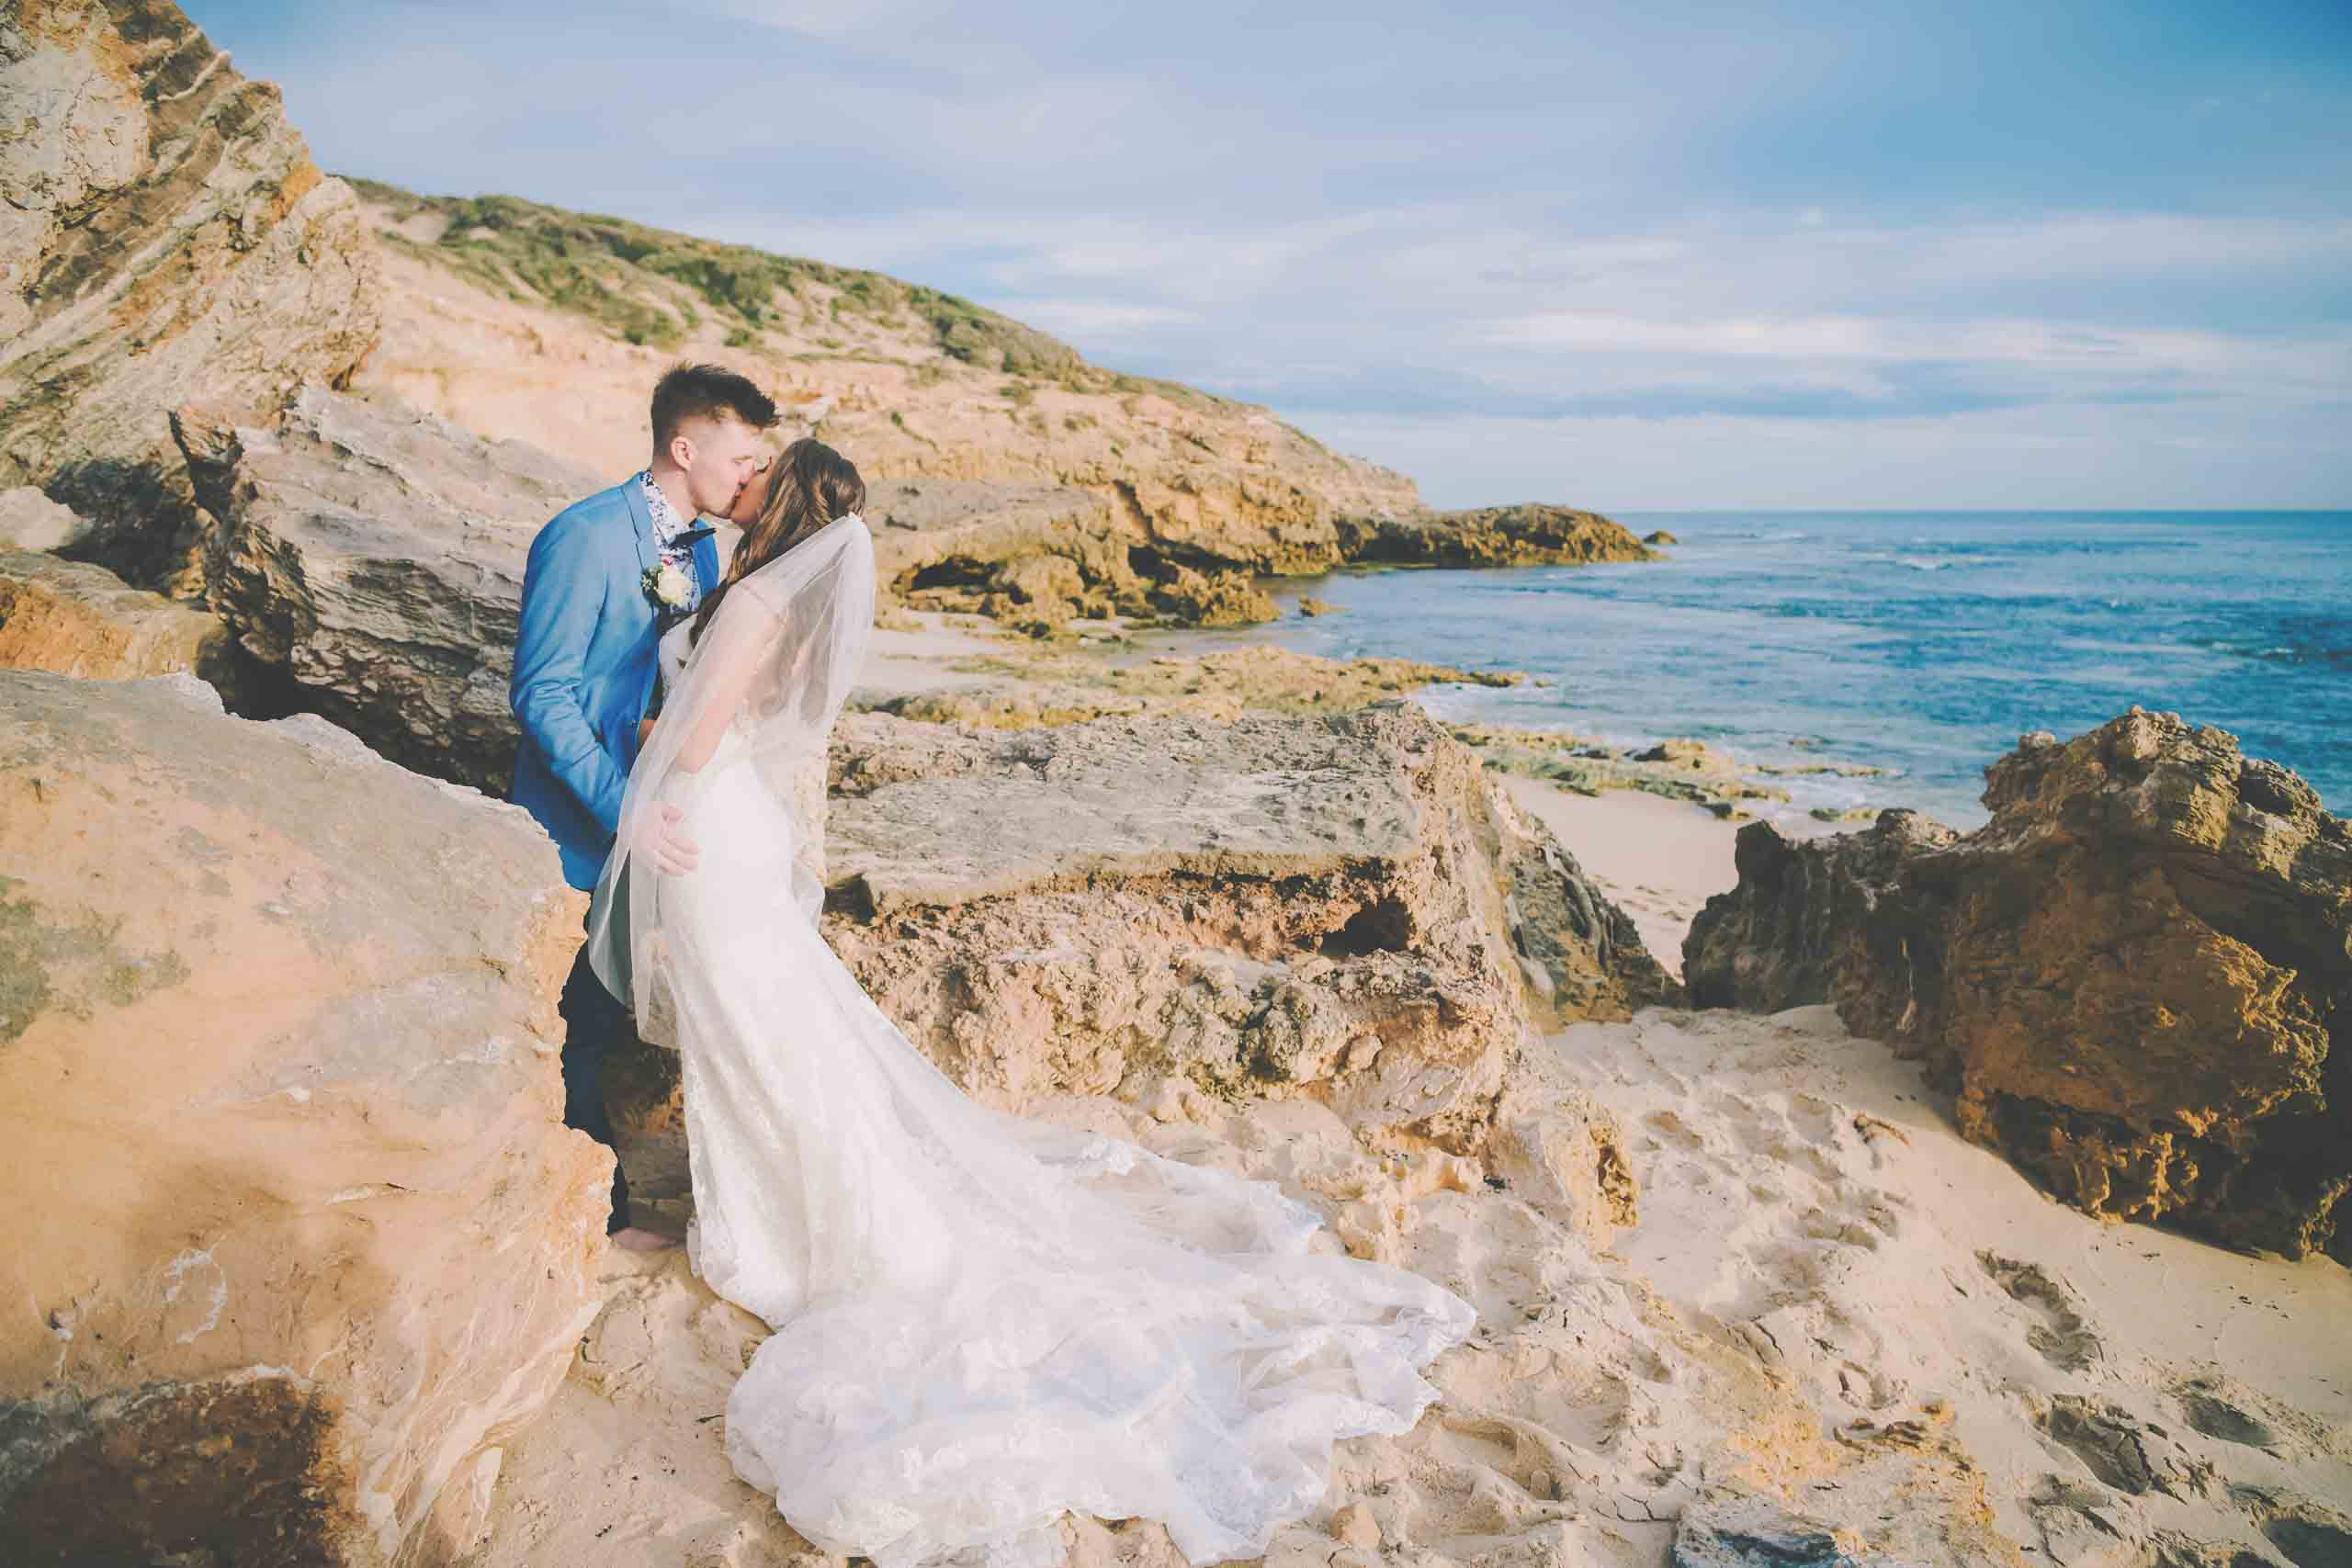 Melbourne wedding photography by Melbourne wedding photographer Pause The Moment